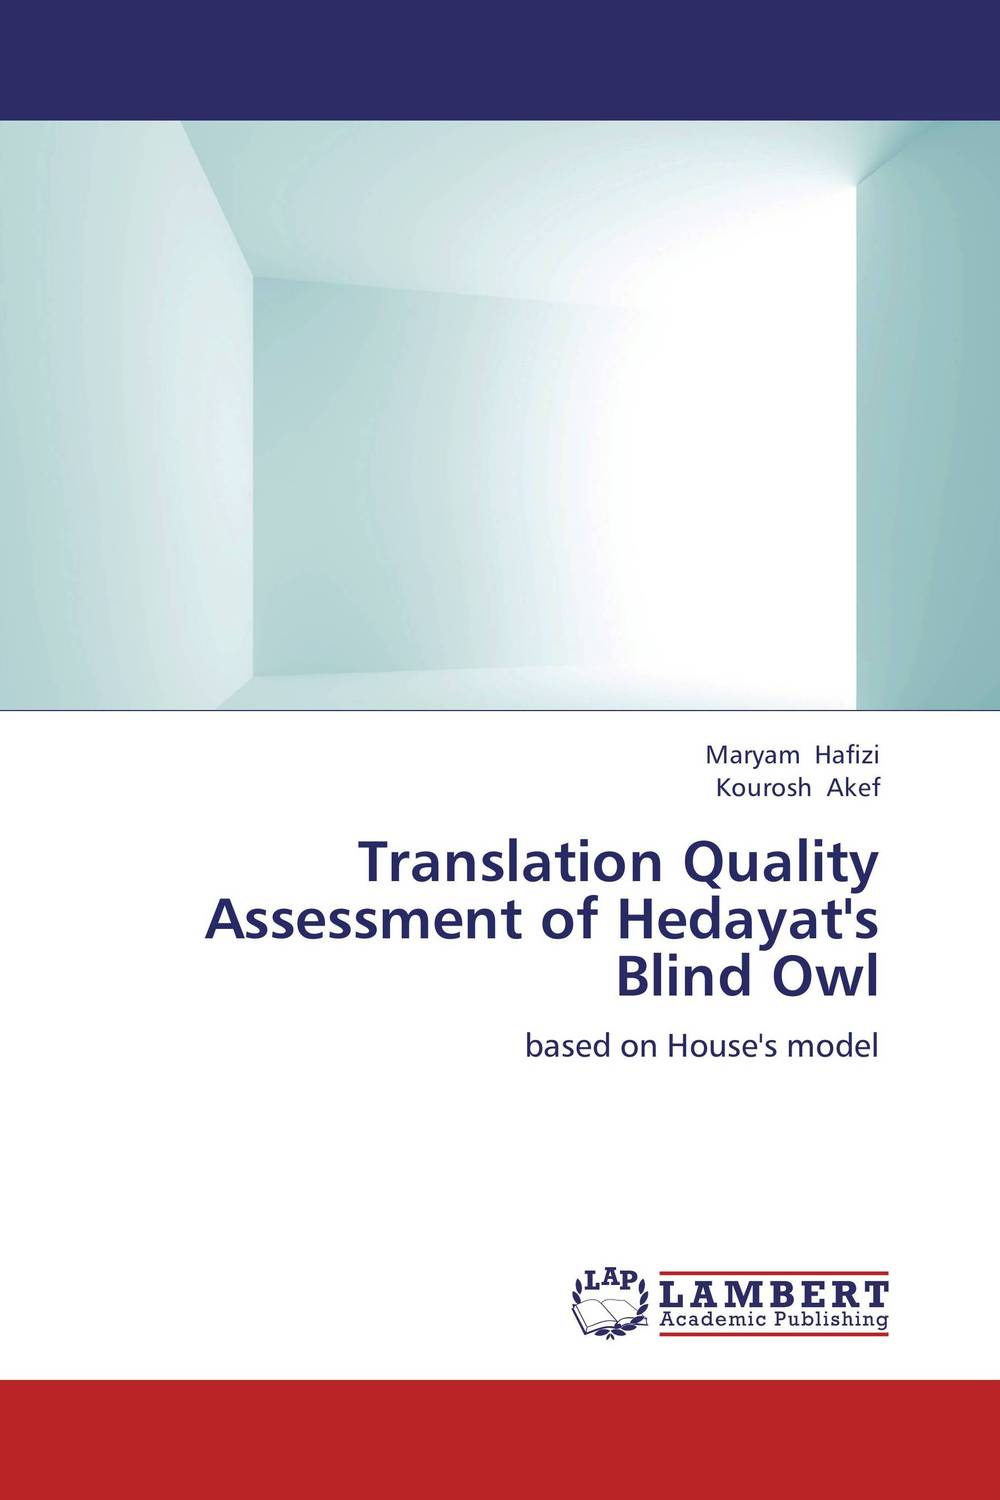 Translation Quality Assessment of Hedayat's Blind Owl shahrzad dehghan kourosh akef and sholeh kolahi the role of brain dominance in translation quality